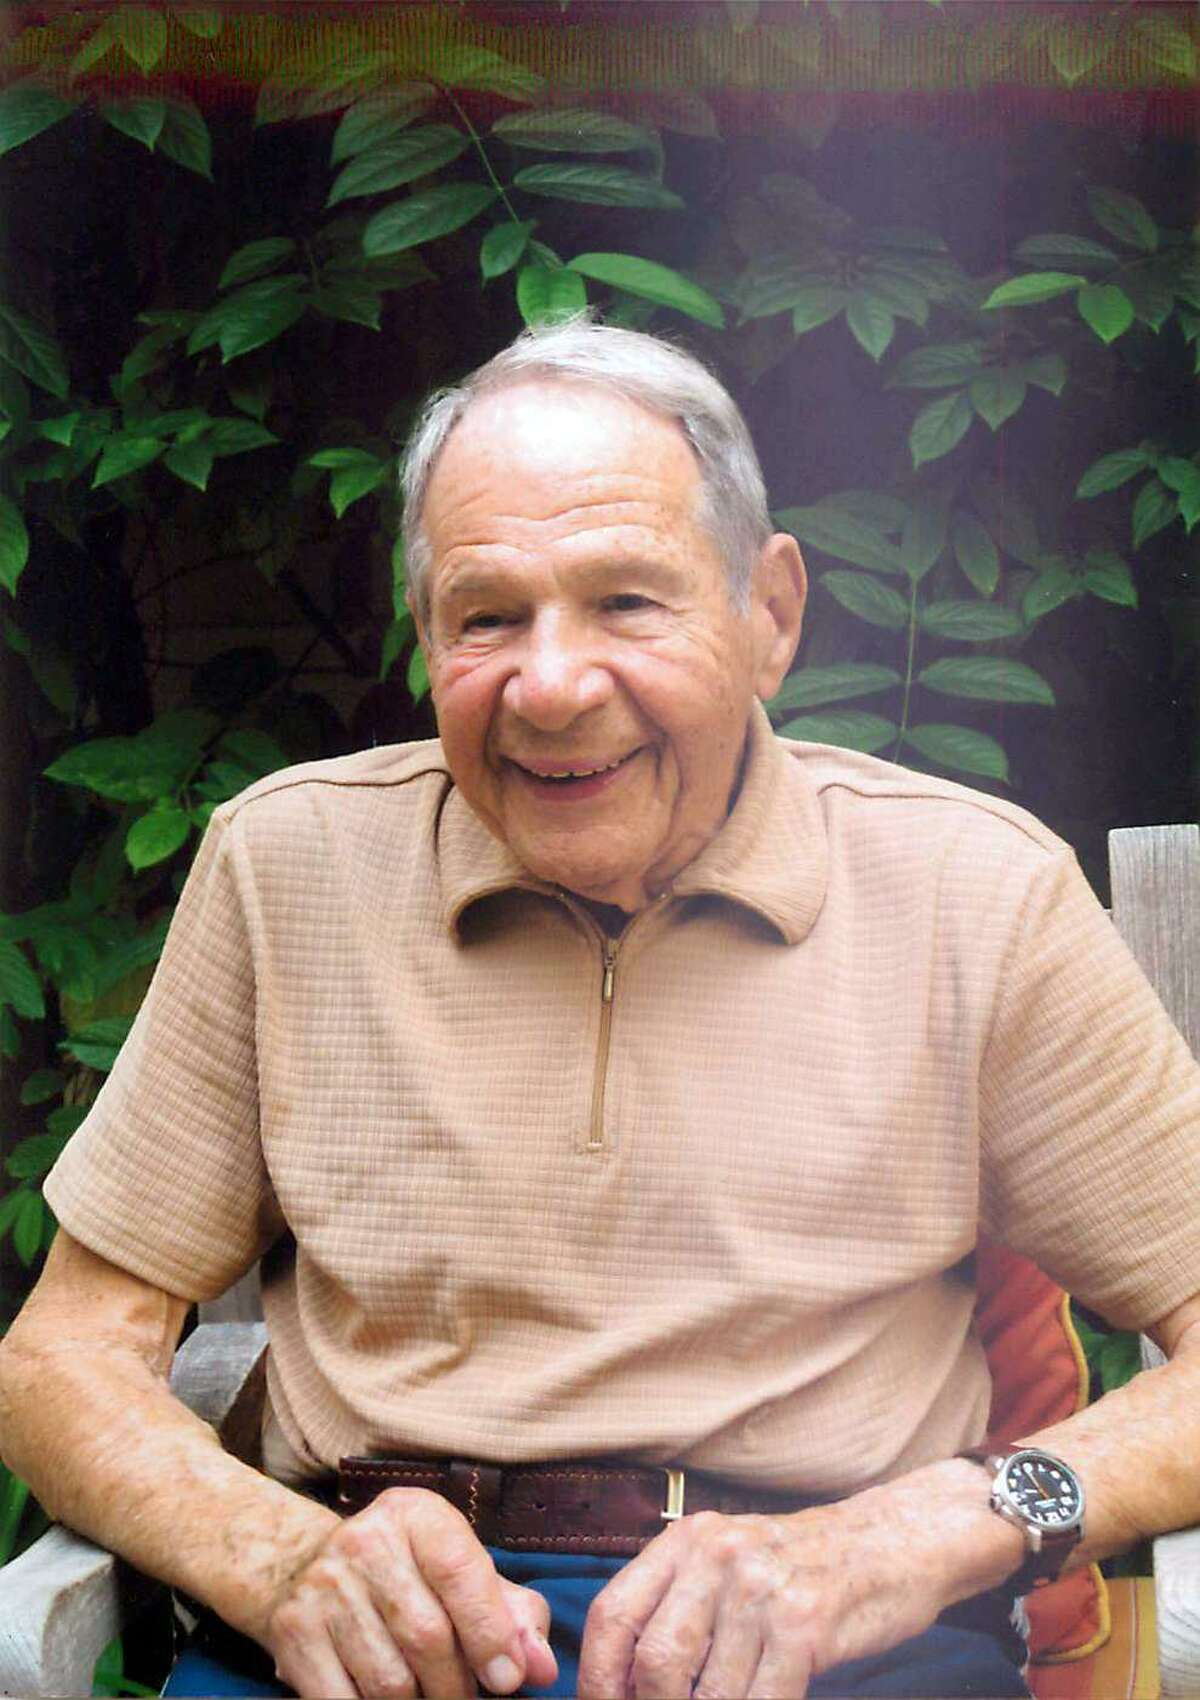 Sigmund Jucker, who with is two brothers founders of the iconic Three Brothers Bakery in 1949, died Dec. 11 at 98. He is the last surviving founder of a business that has been a cornerstone in Houston's Jewish community for generations.